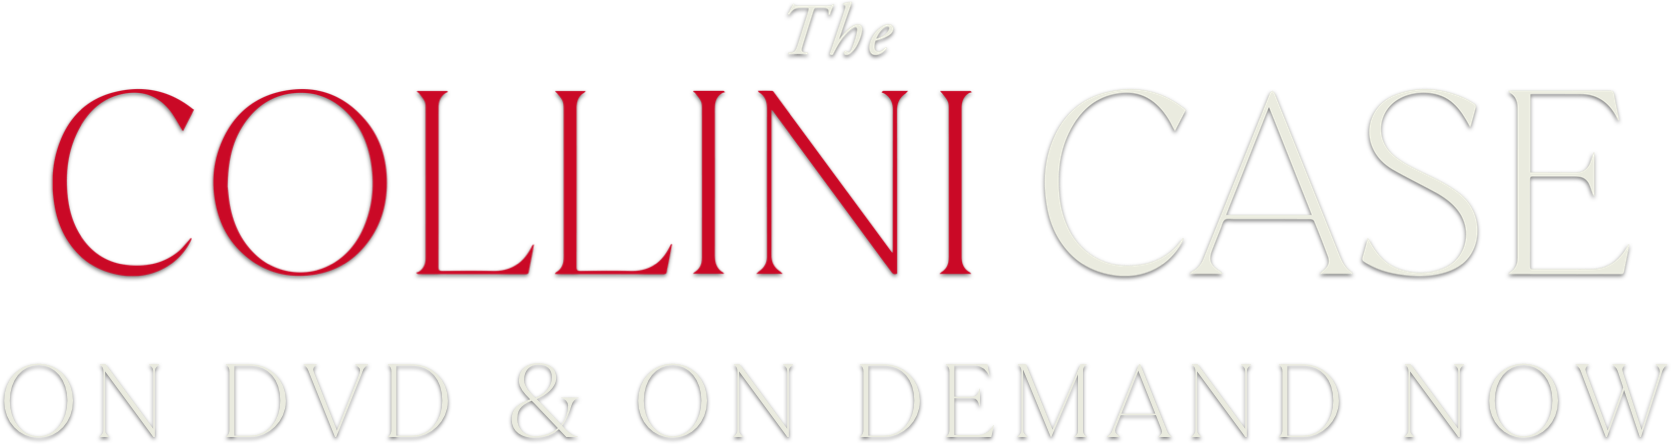 Title or logo for The Collini Case